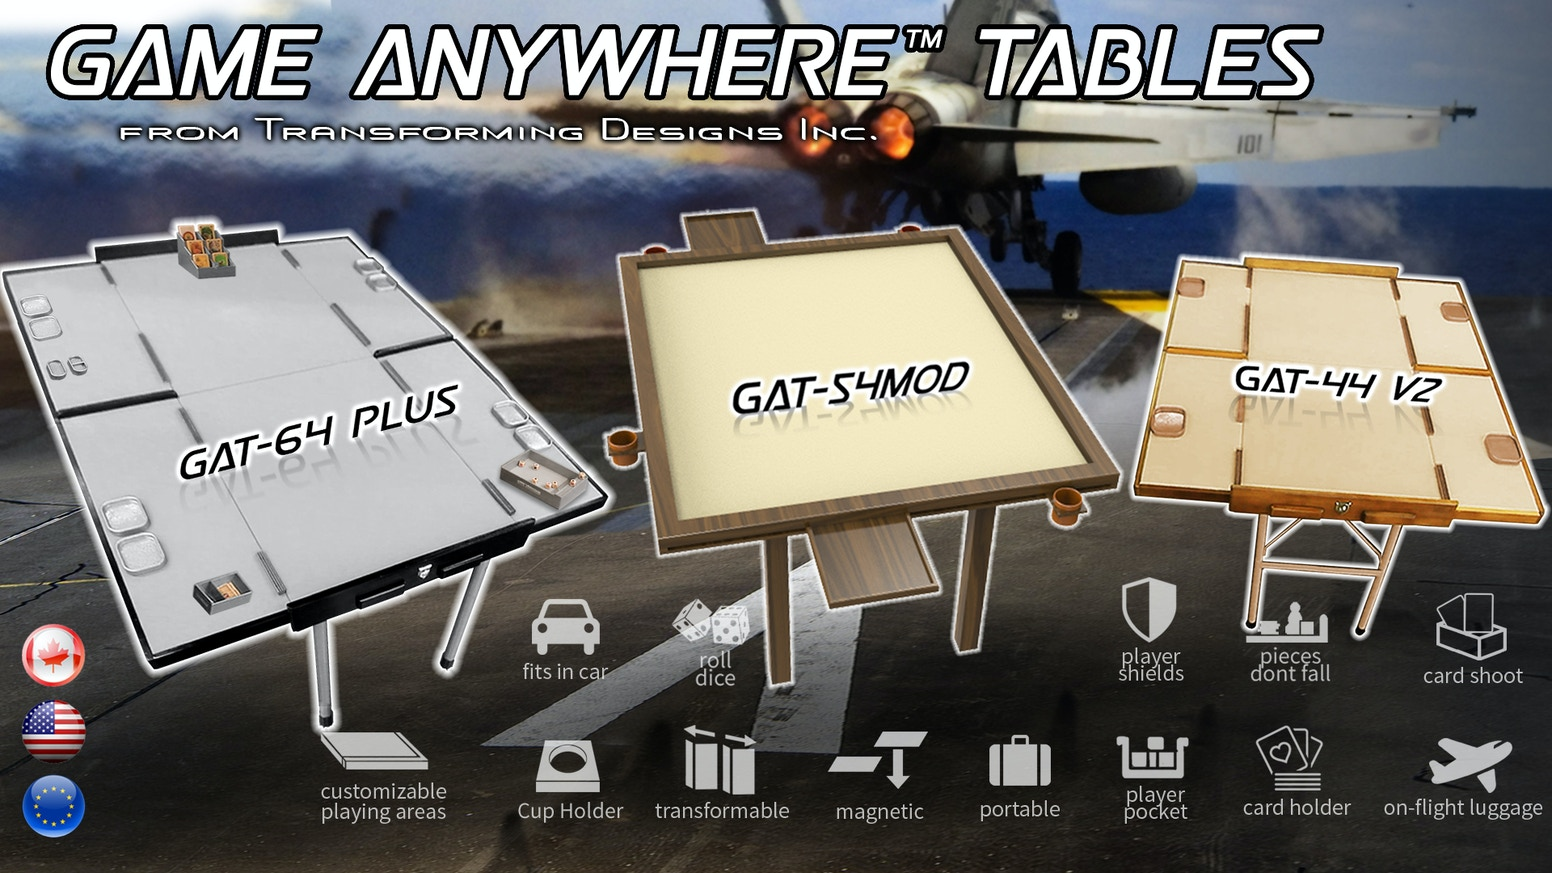 Game Anywhere GAT-64Plus is our largest portable gaming table the GAT-54MOD is able to add or reduce in size to fit your gaming needs.